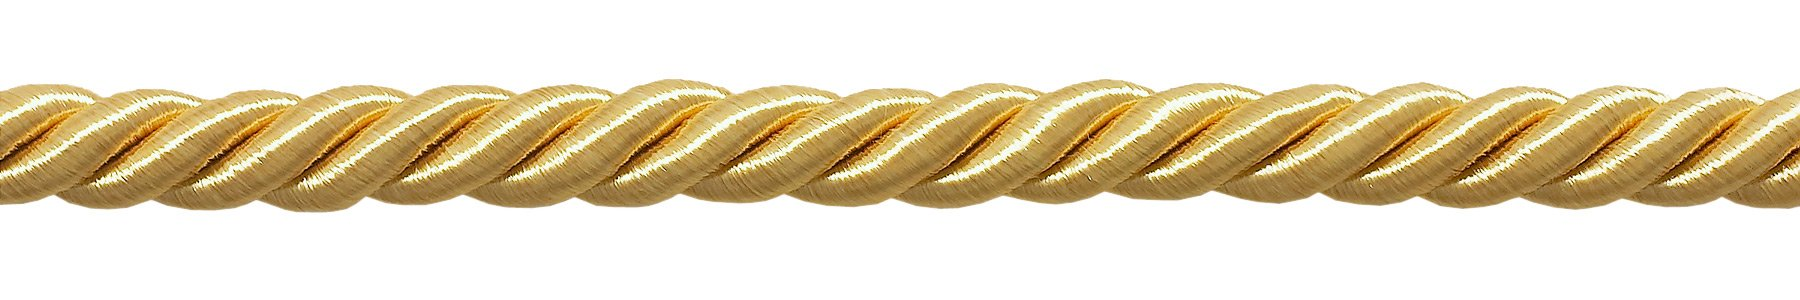 32.5 Yard Package of 3/8 inch Large Light Gold Color Decorative Cord, Basic Trim Collection, Style# 0038NL Color: B7 (98 Ft.) by DÉCOPRO